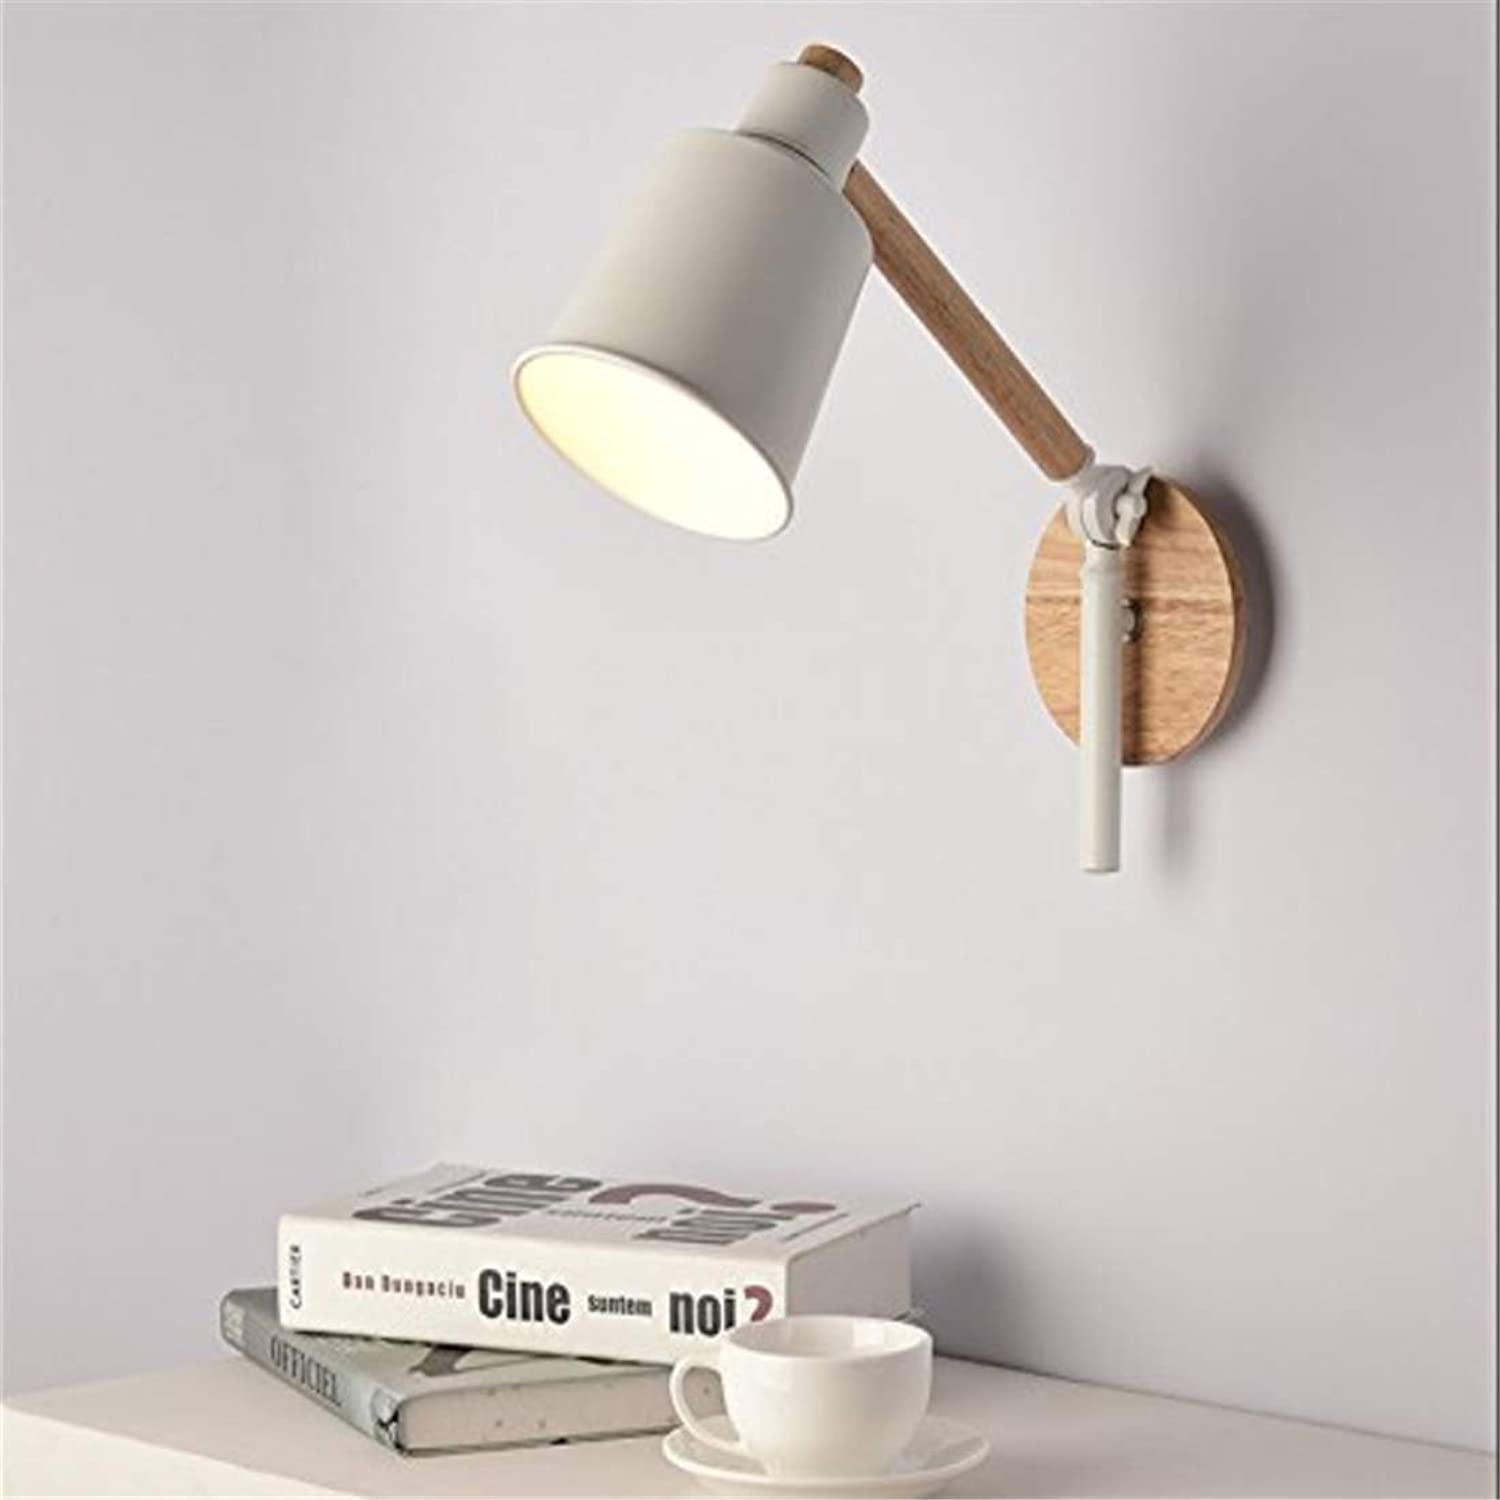 Lightwall Sconce Wall Lights Nordic Wall Lamp Modern Simple Creative Bedroom Bedside Balcony Aisle Led Solid Wood Quality Metal Long Arm Wall Lights [Energy Class A++]